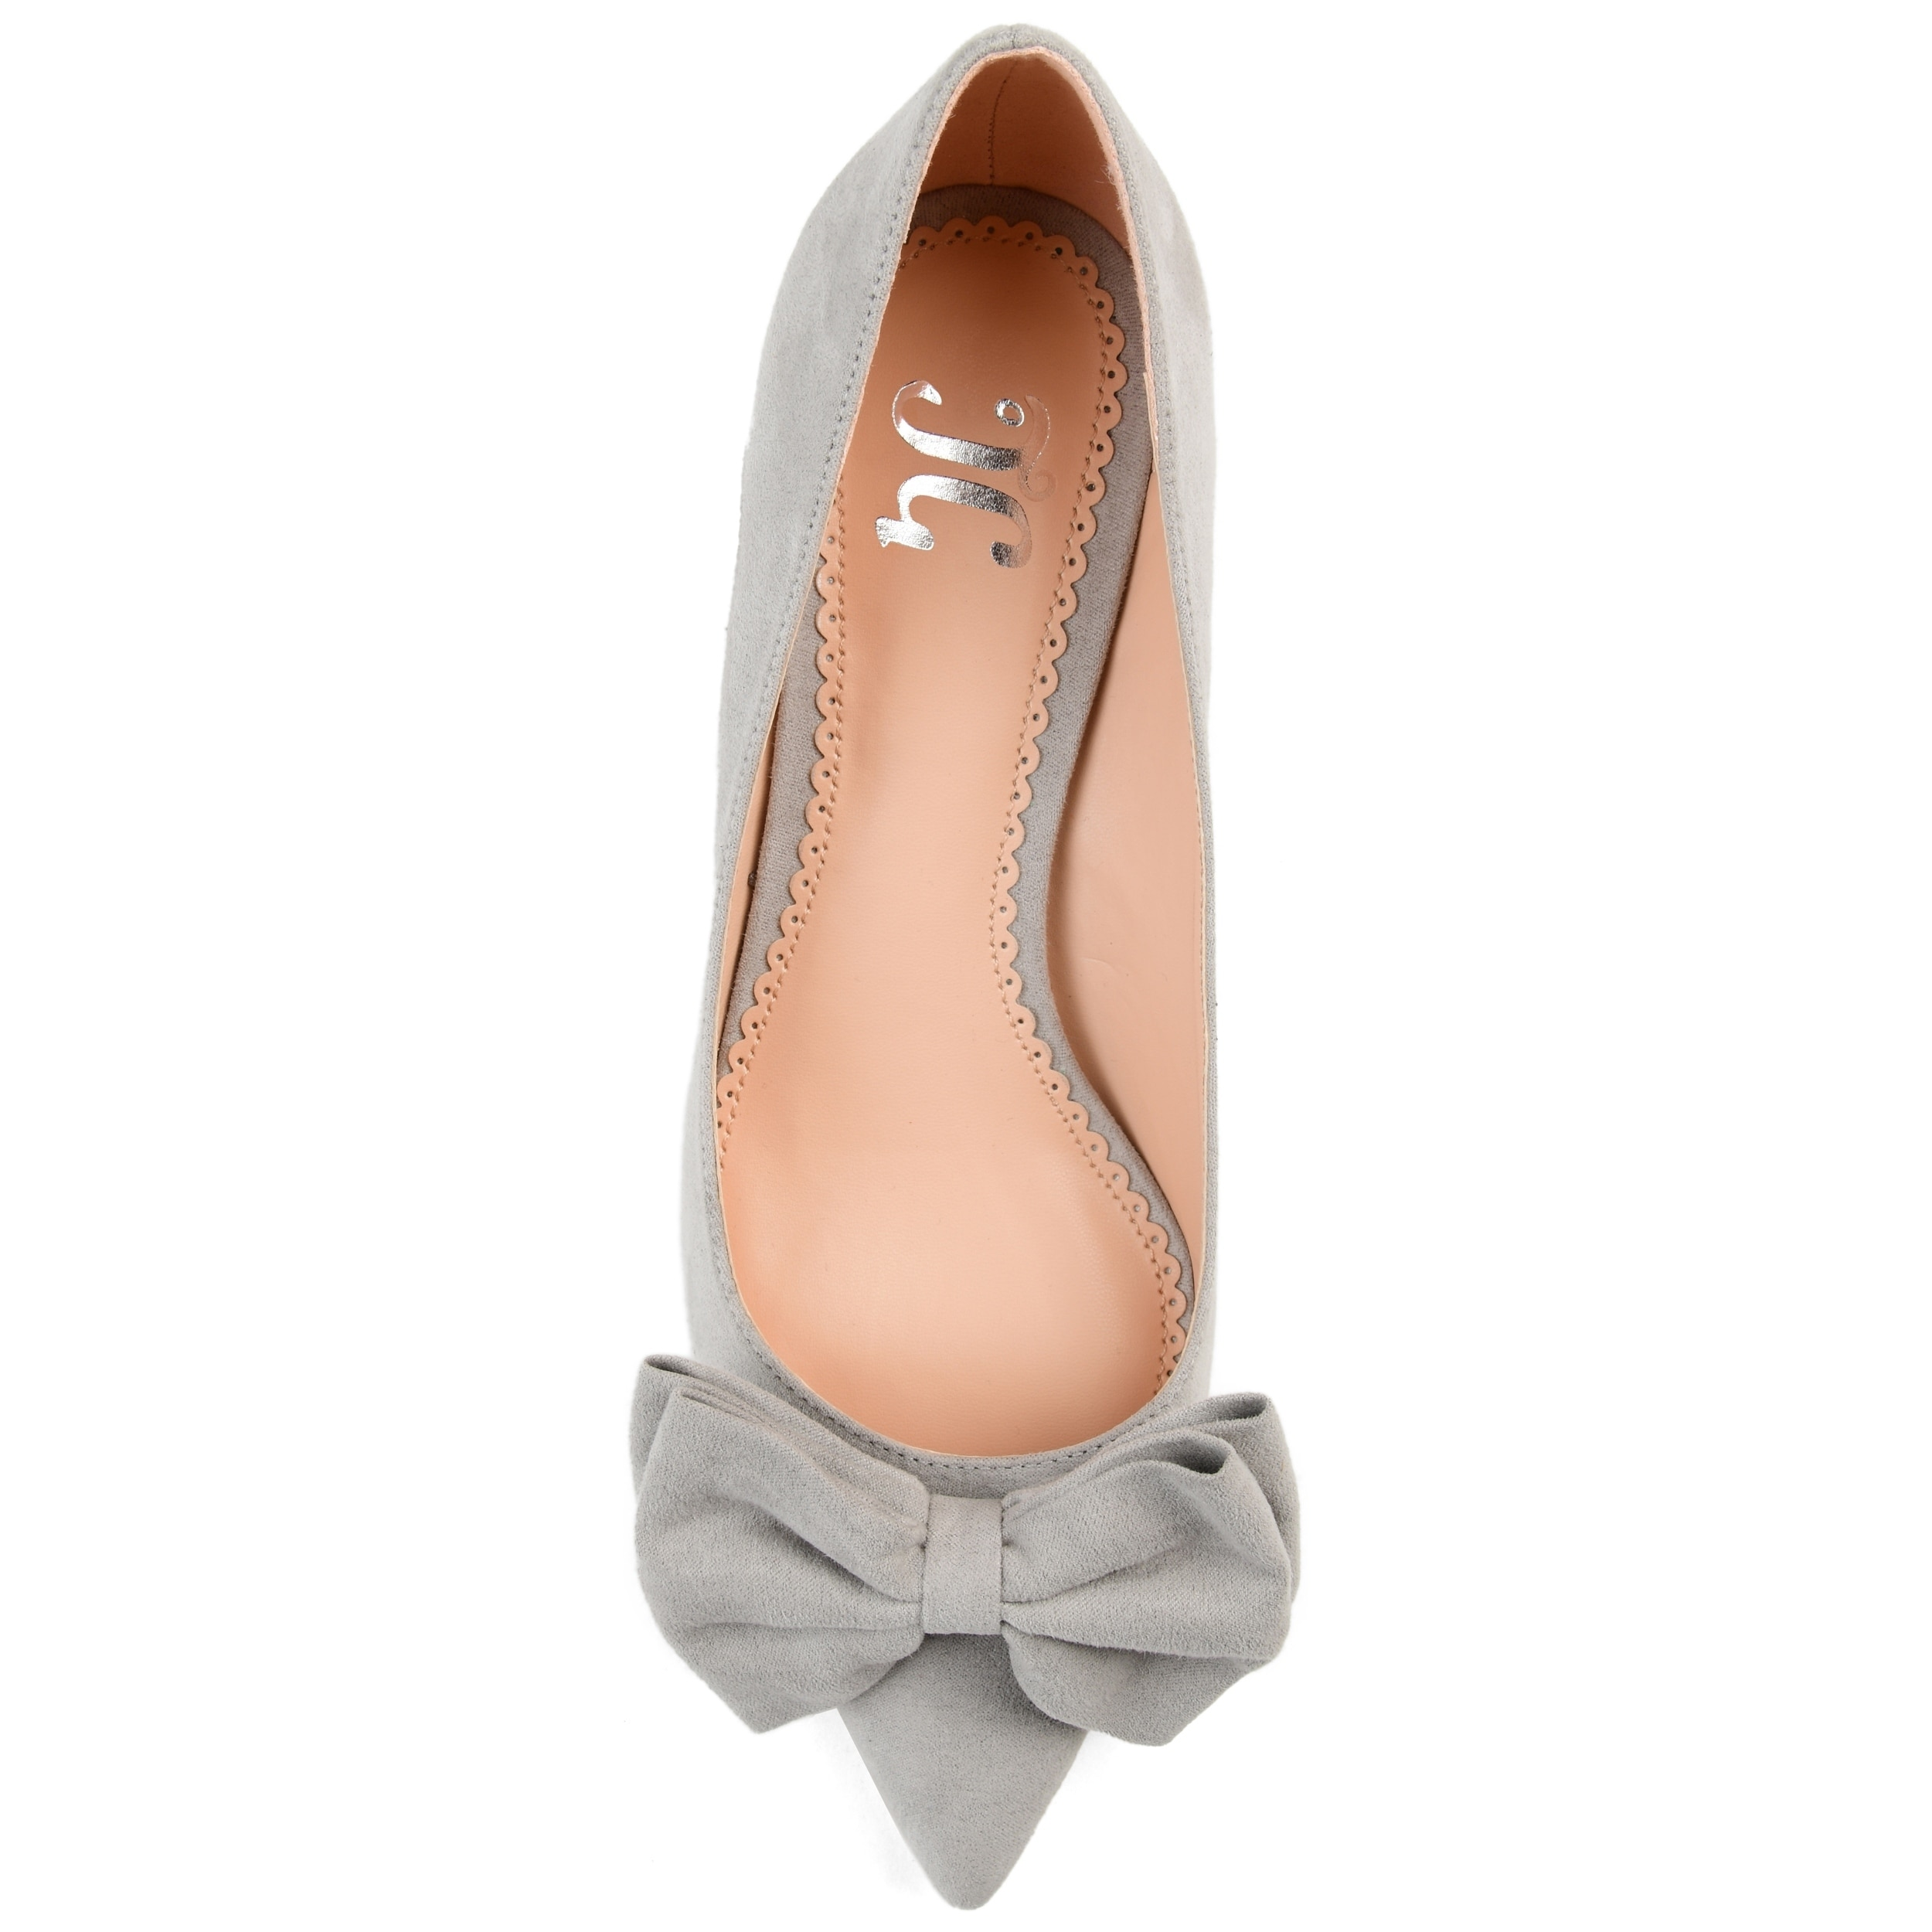 6a65a892f0a Shop Journee Collection Women s Orana Pump - Free Shipping Today -  Overstock - 22815660